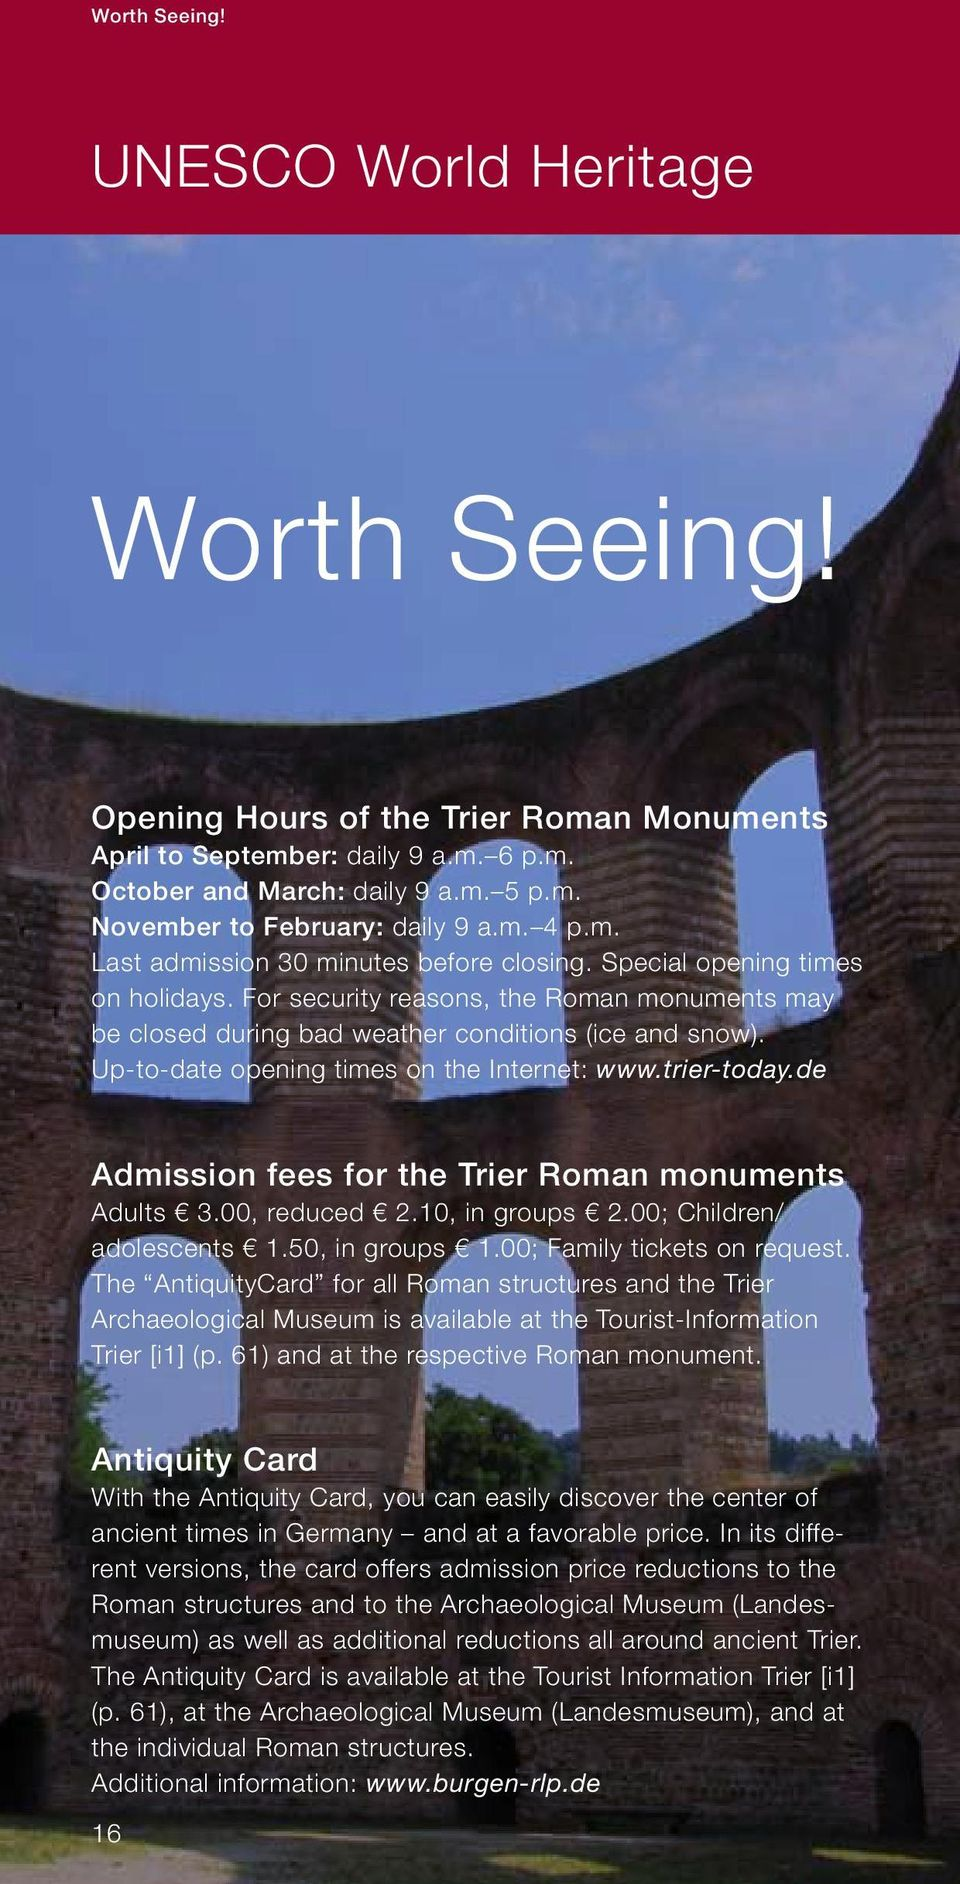 Up-to-date opening times on the Internet: www.trier-today.de Admission fees for the Trier Roman monuments Adults 3.00, reduced 2.10, in groups 2.00; Children/ adolescents 1.50, in groups 1.